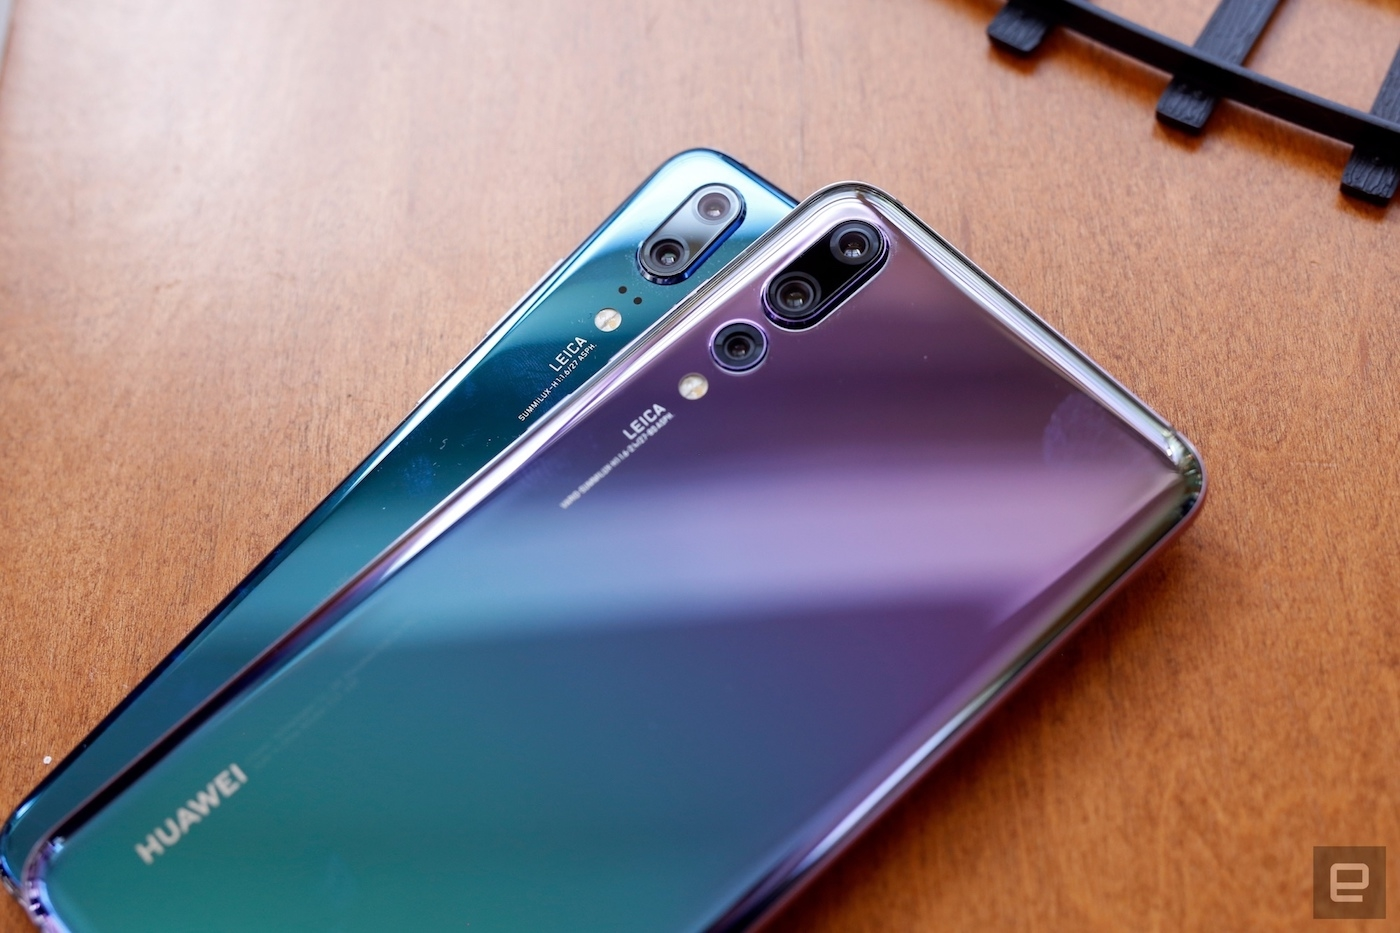 Huawei supplants Apple as the second largest smartphone seller | DeviceDaily.com